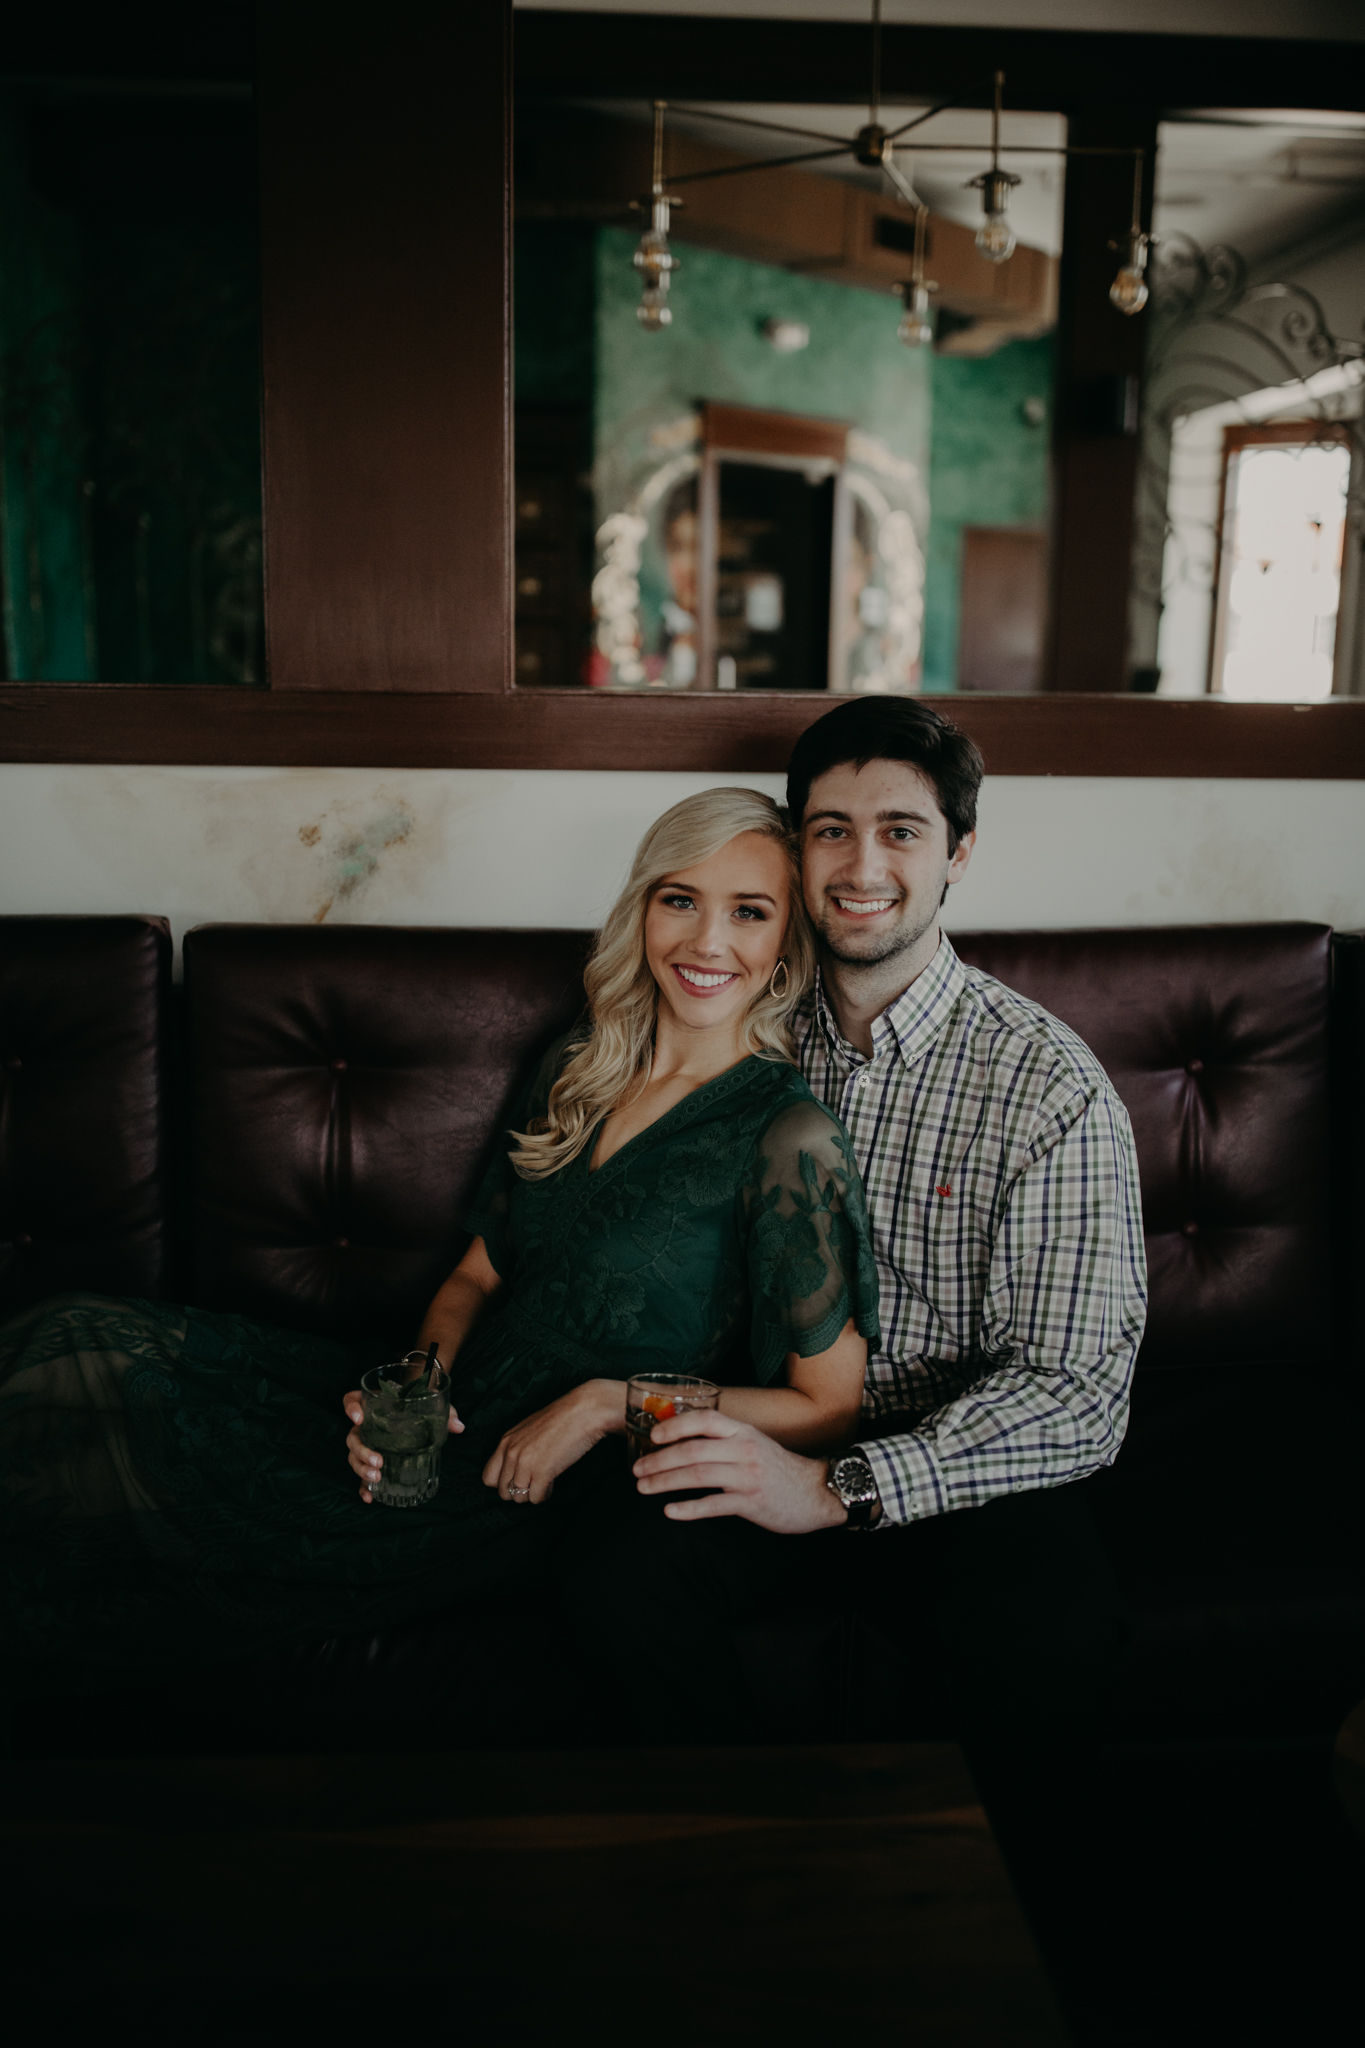 Ali-and-Jake-Chattanooga-Nashville-Tennessee-Wedding-Elopement-Photographer-96.jpg